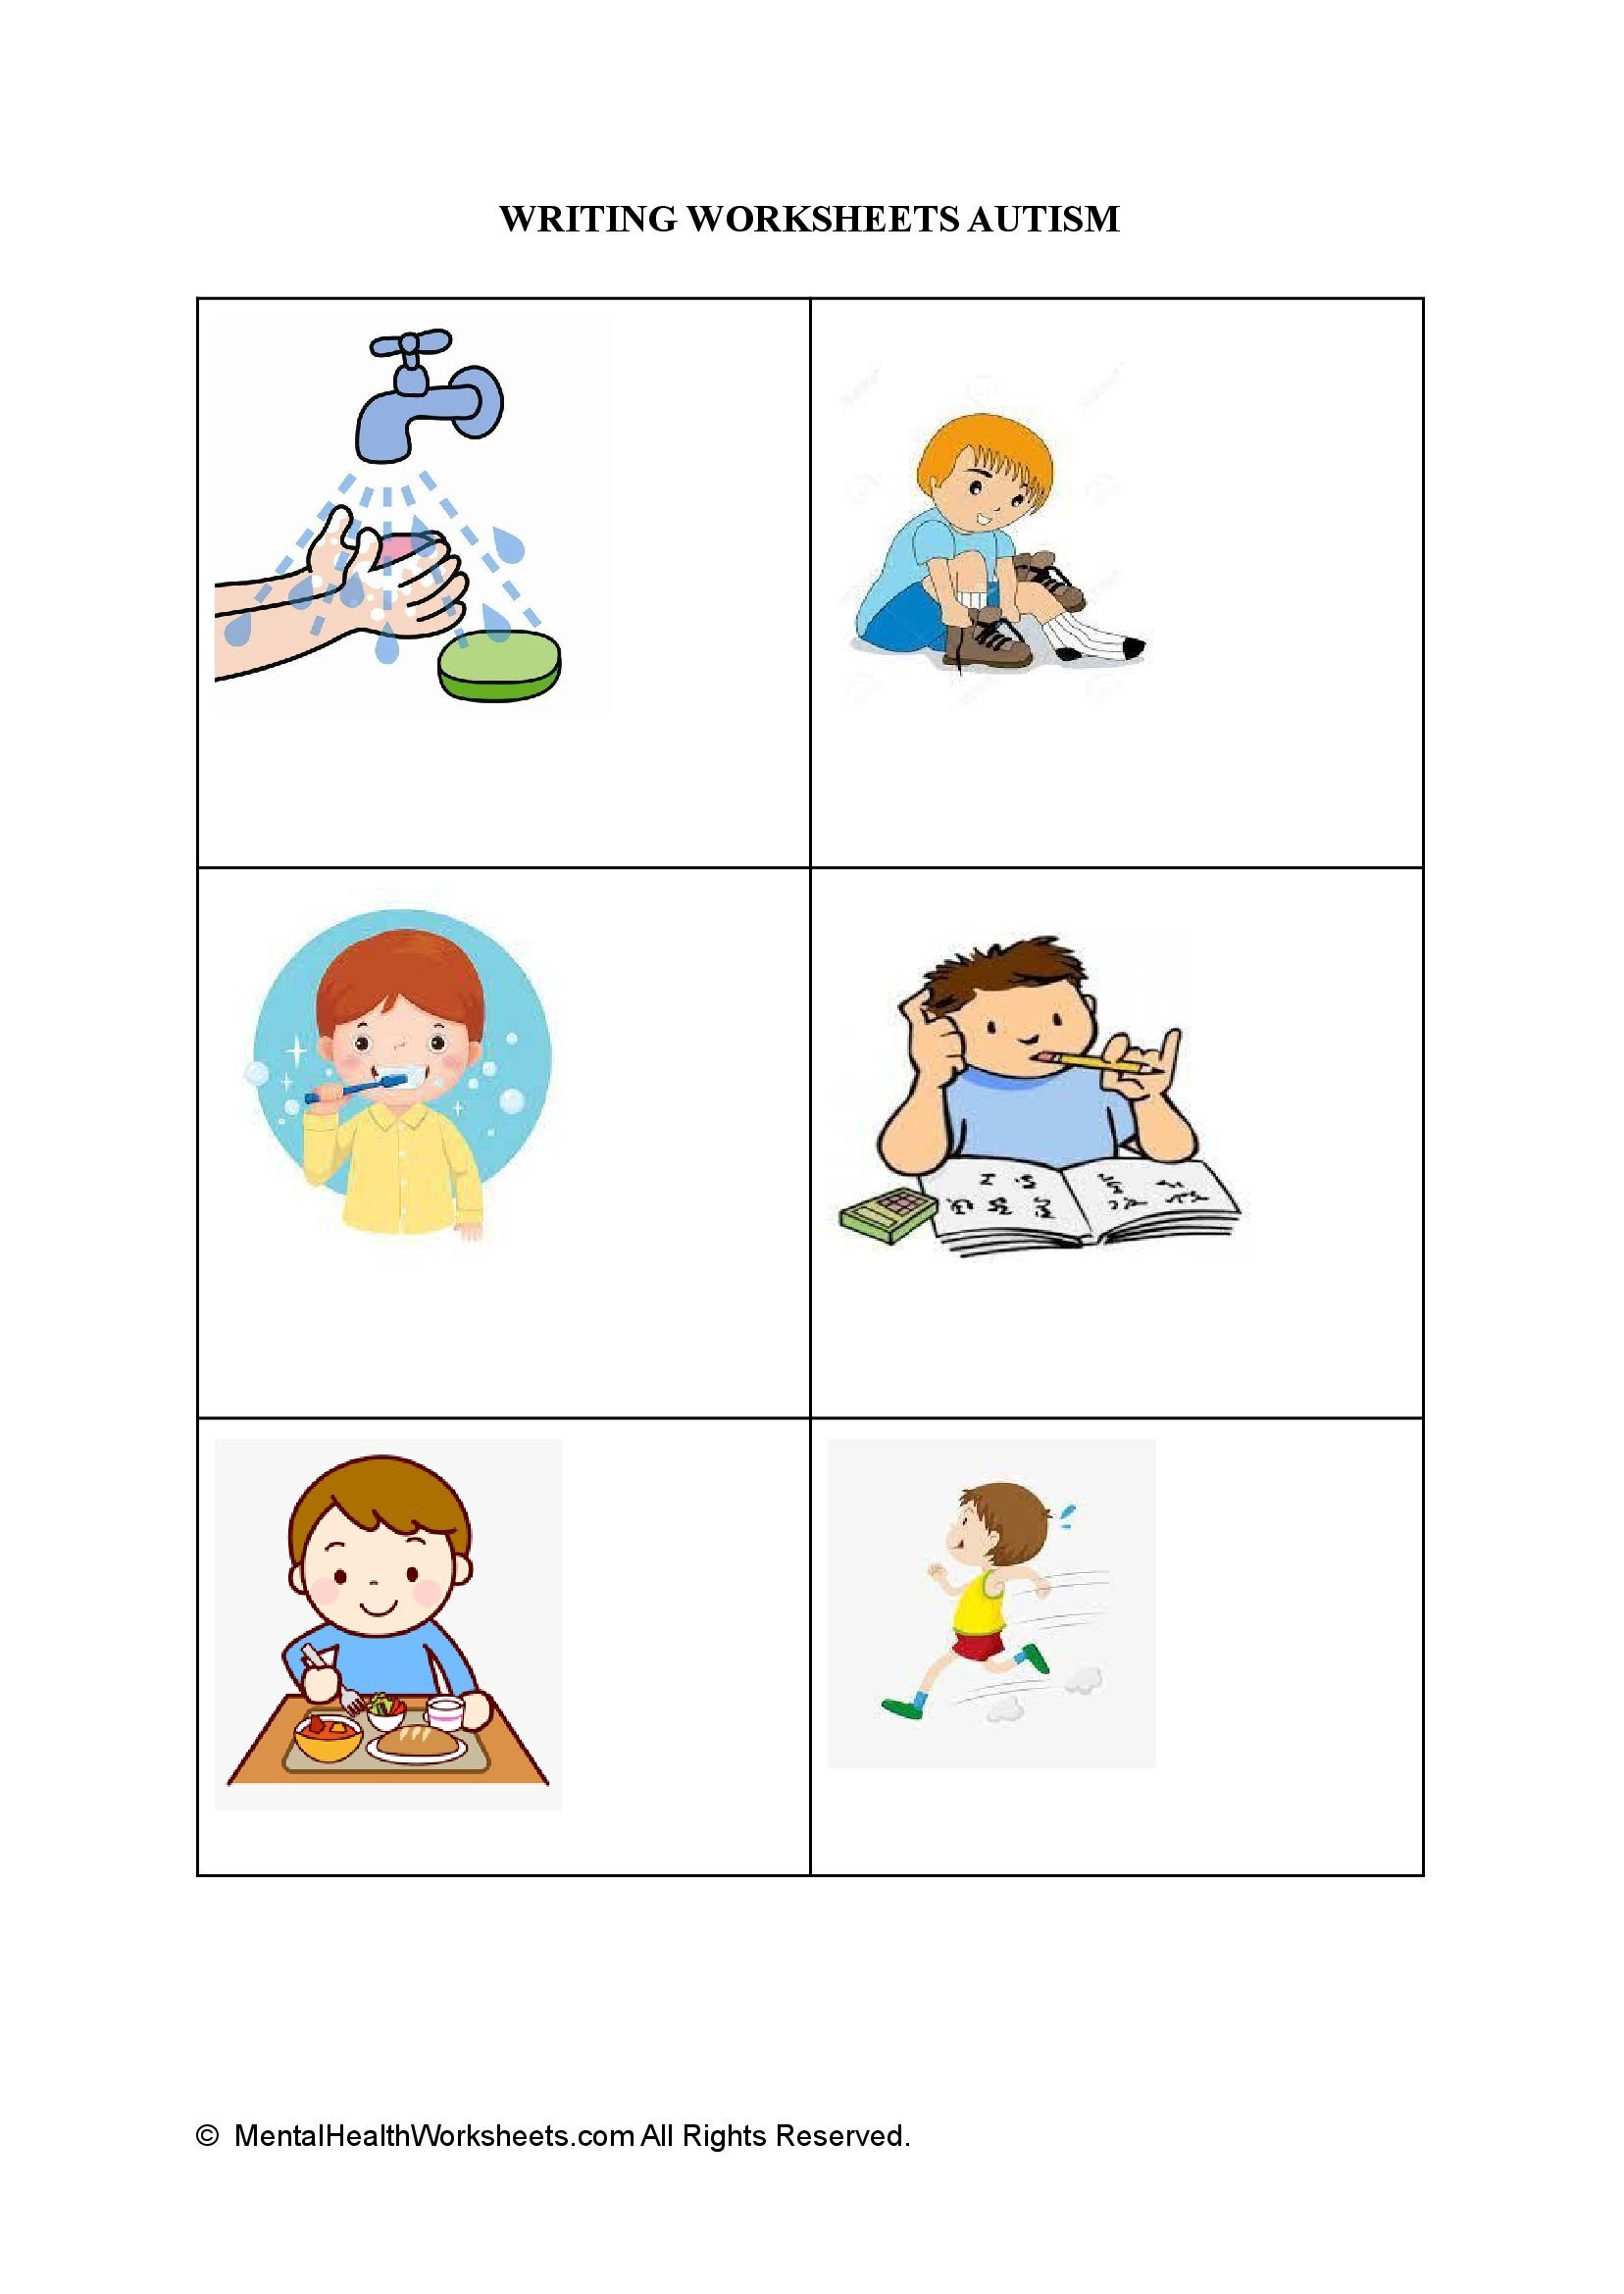 WRITING WORKSHEETS AUTISM